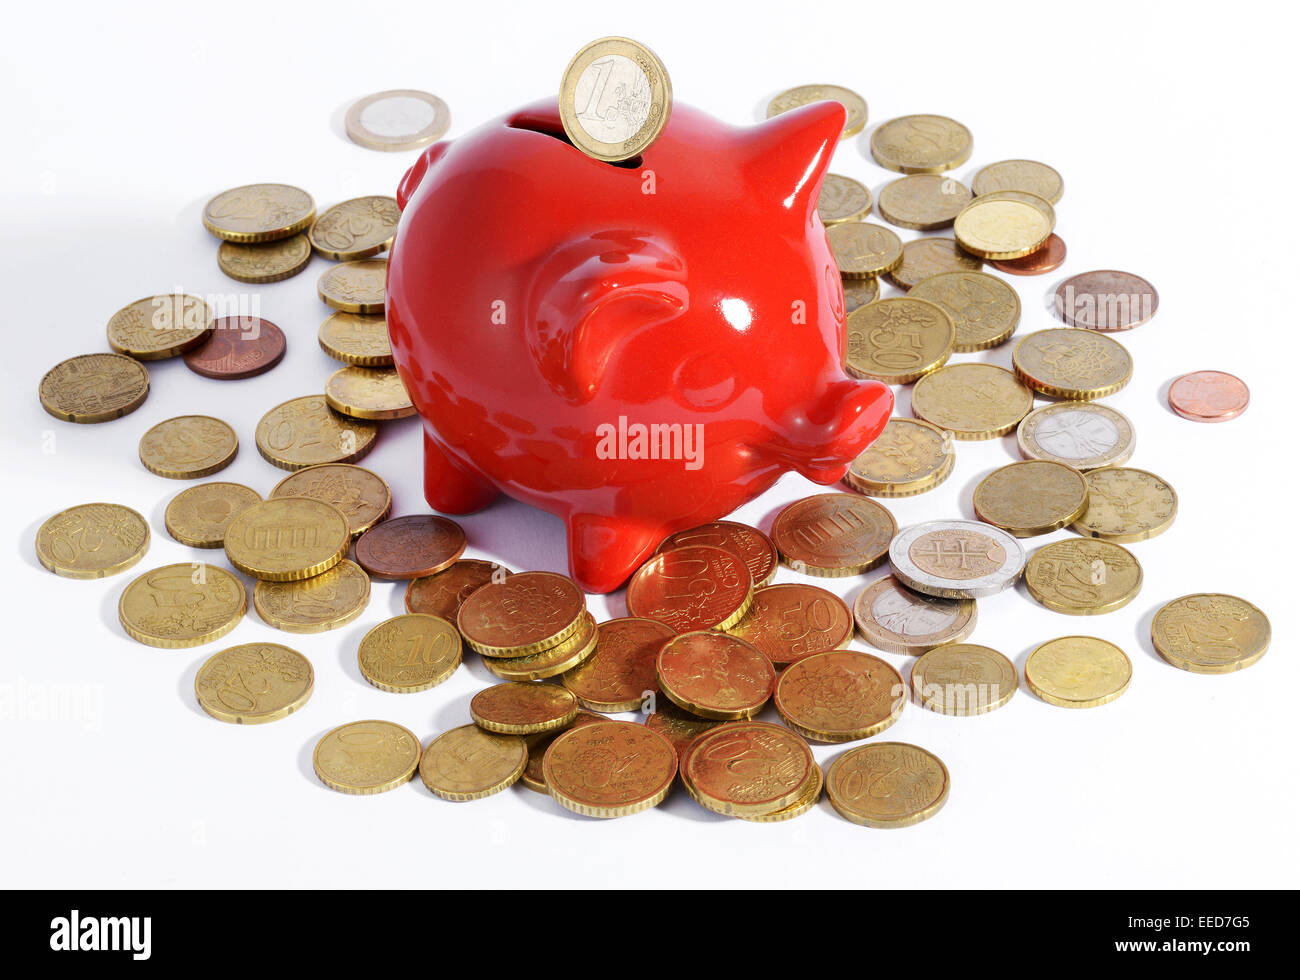 Red piggy bank surrounded by coins - Stock Image